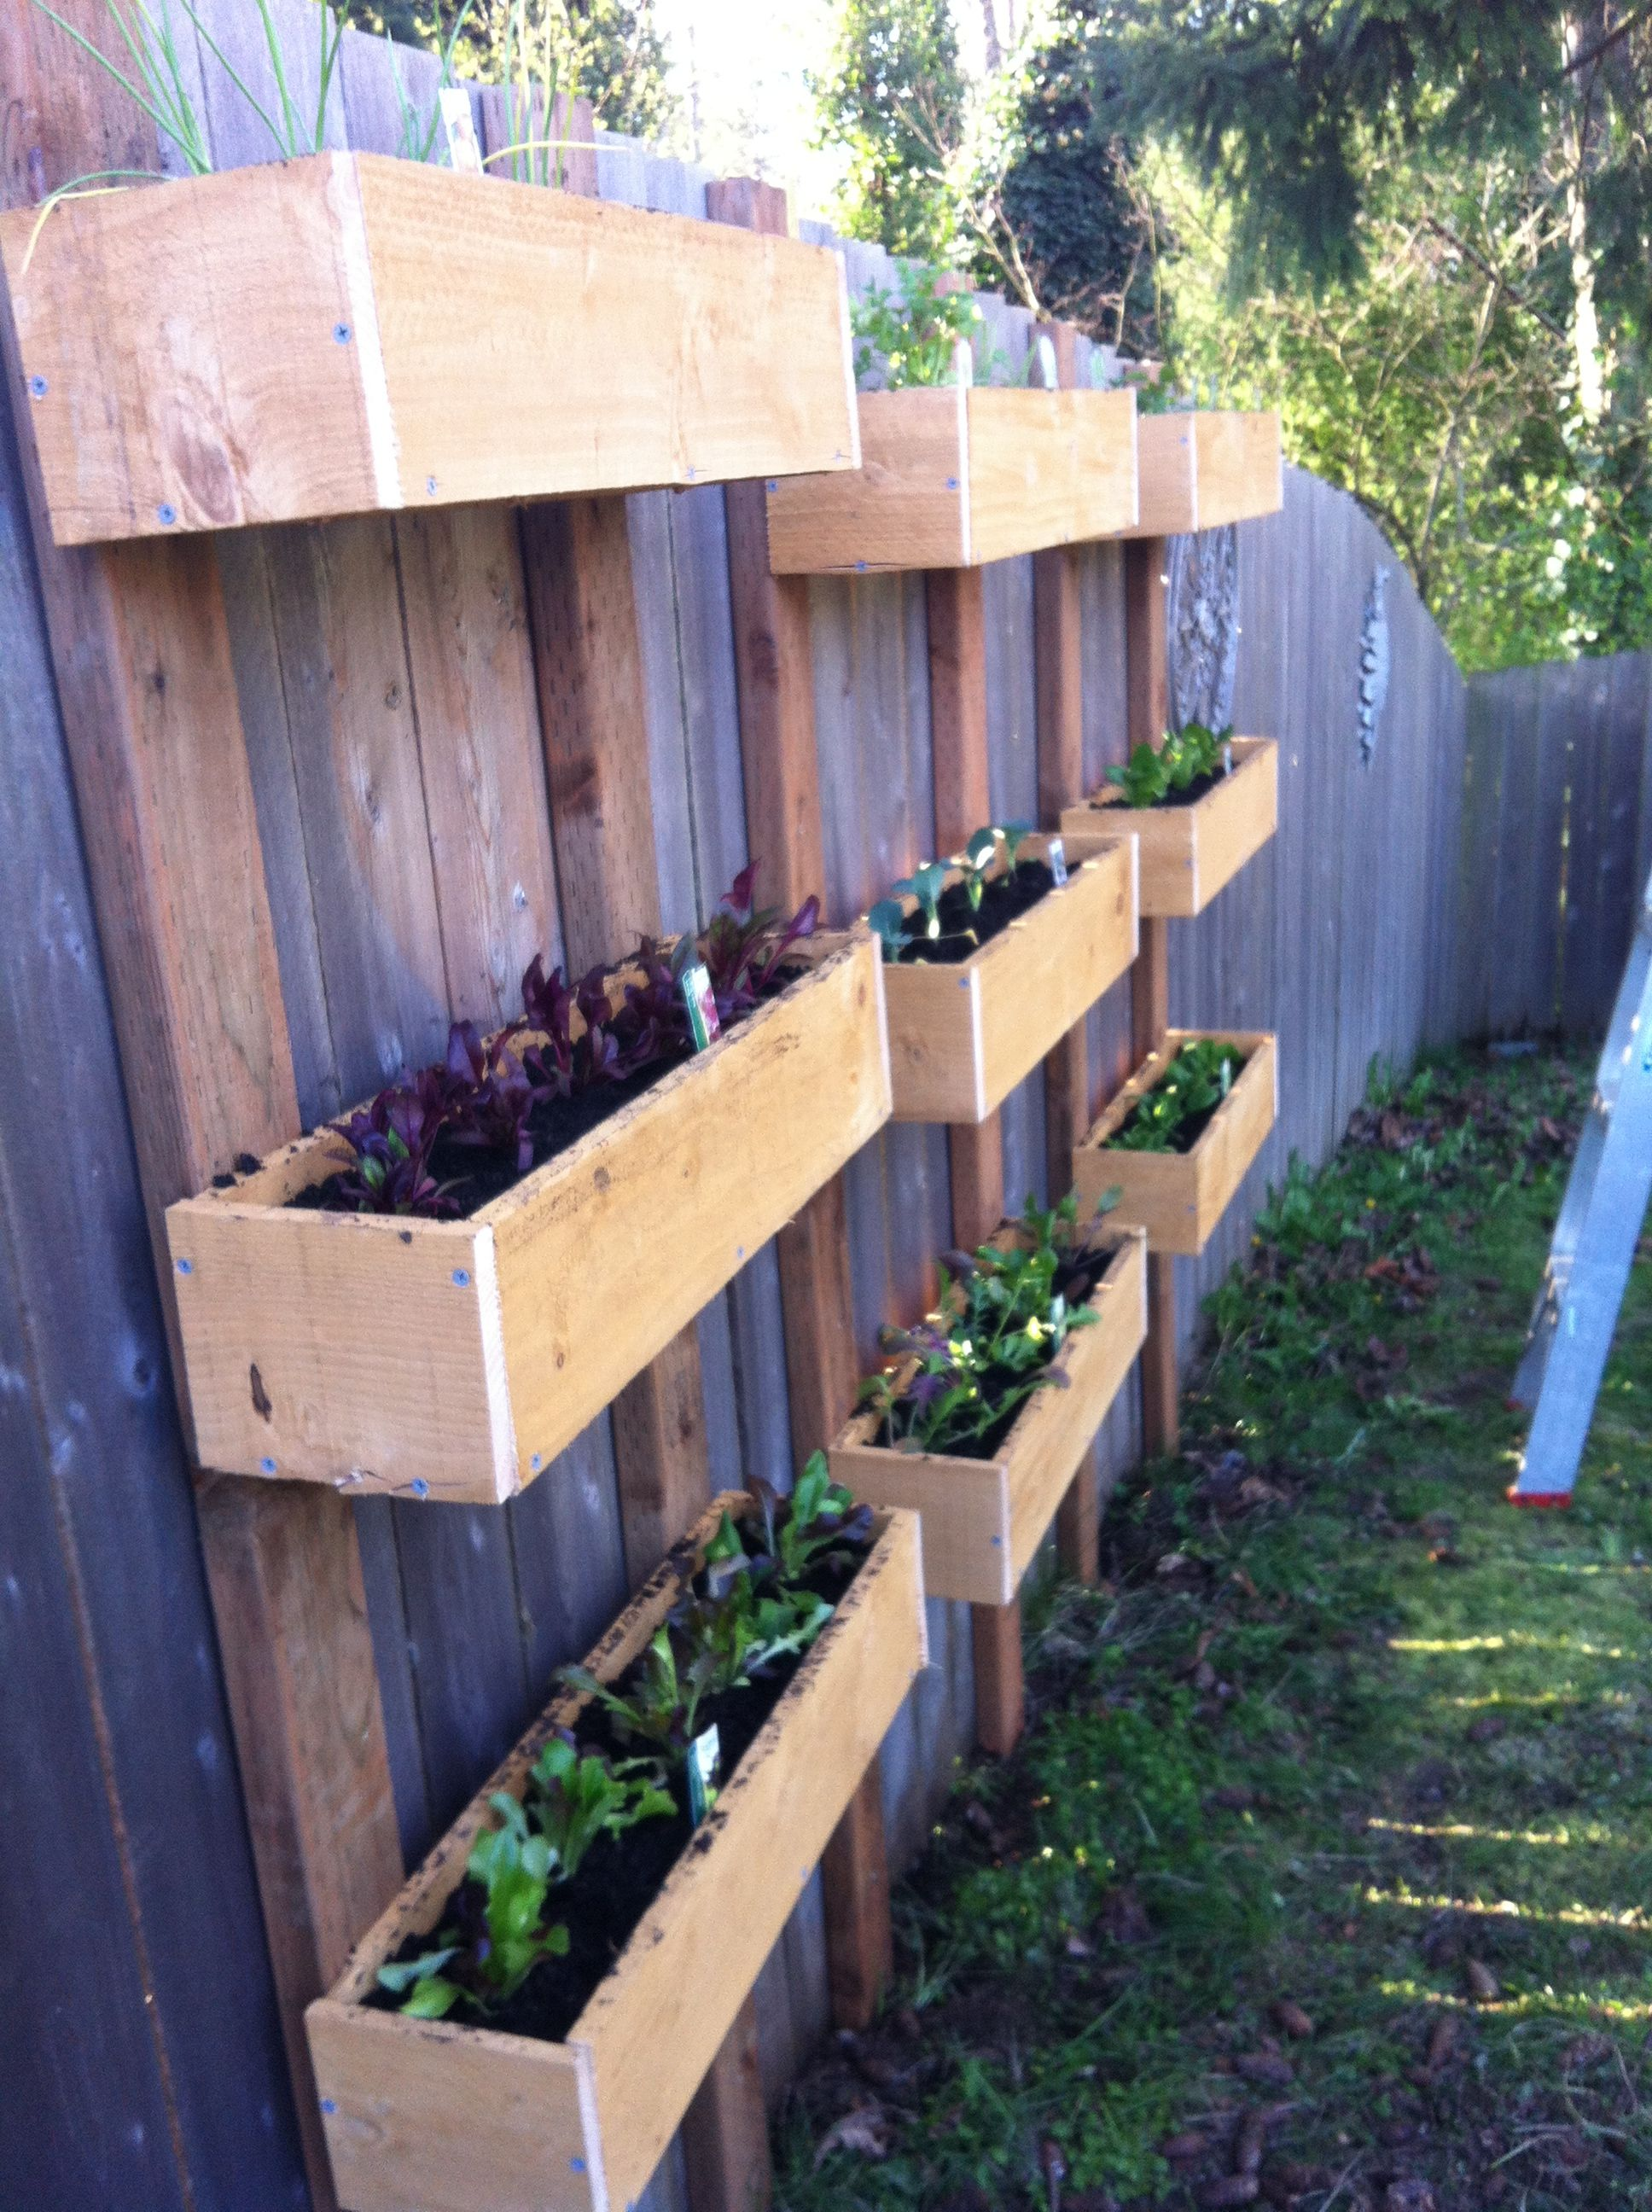 Hanging planter boxes on the fence | Gardening | Pinterest ...